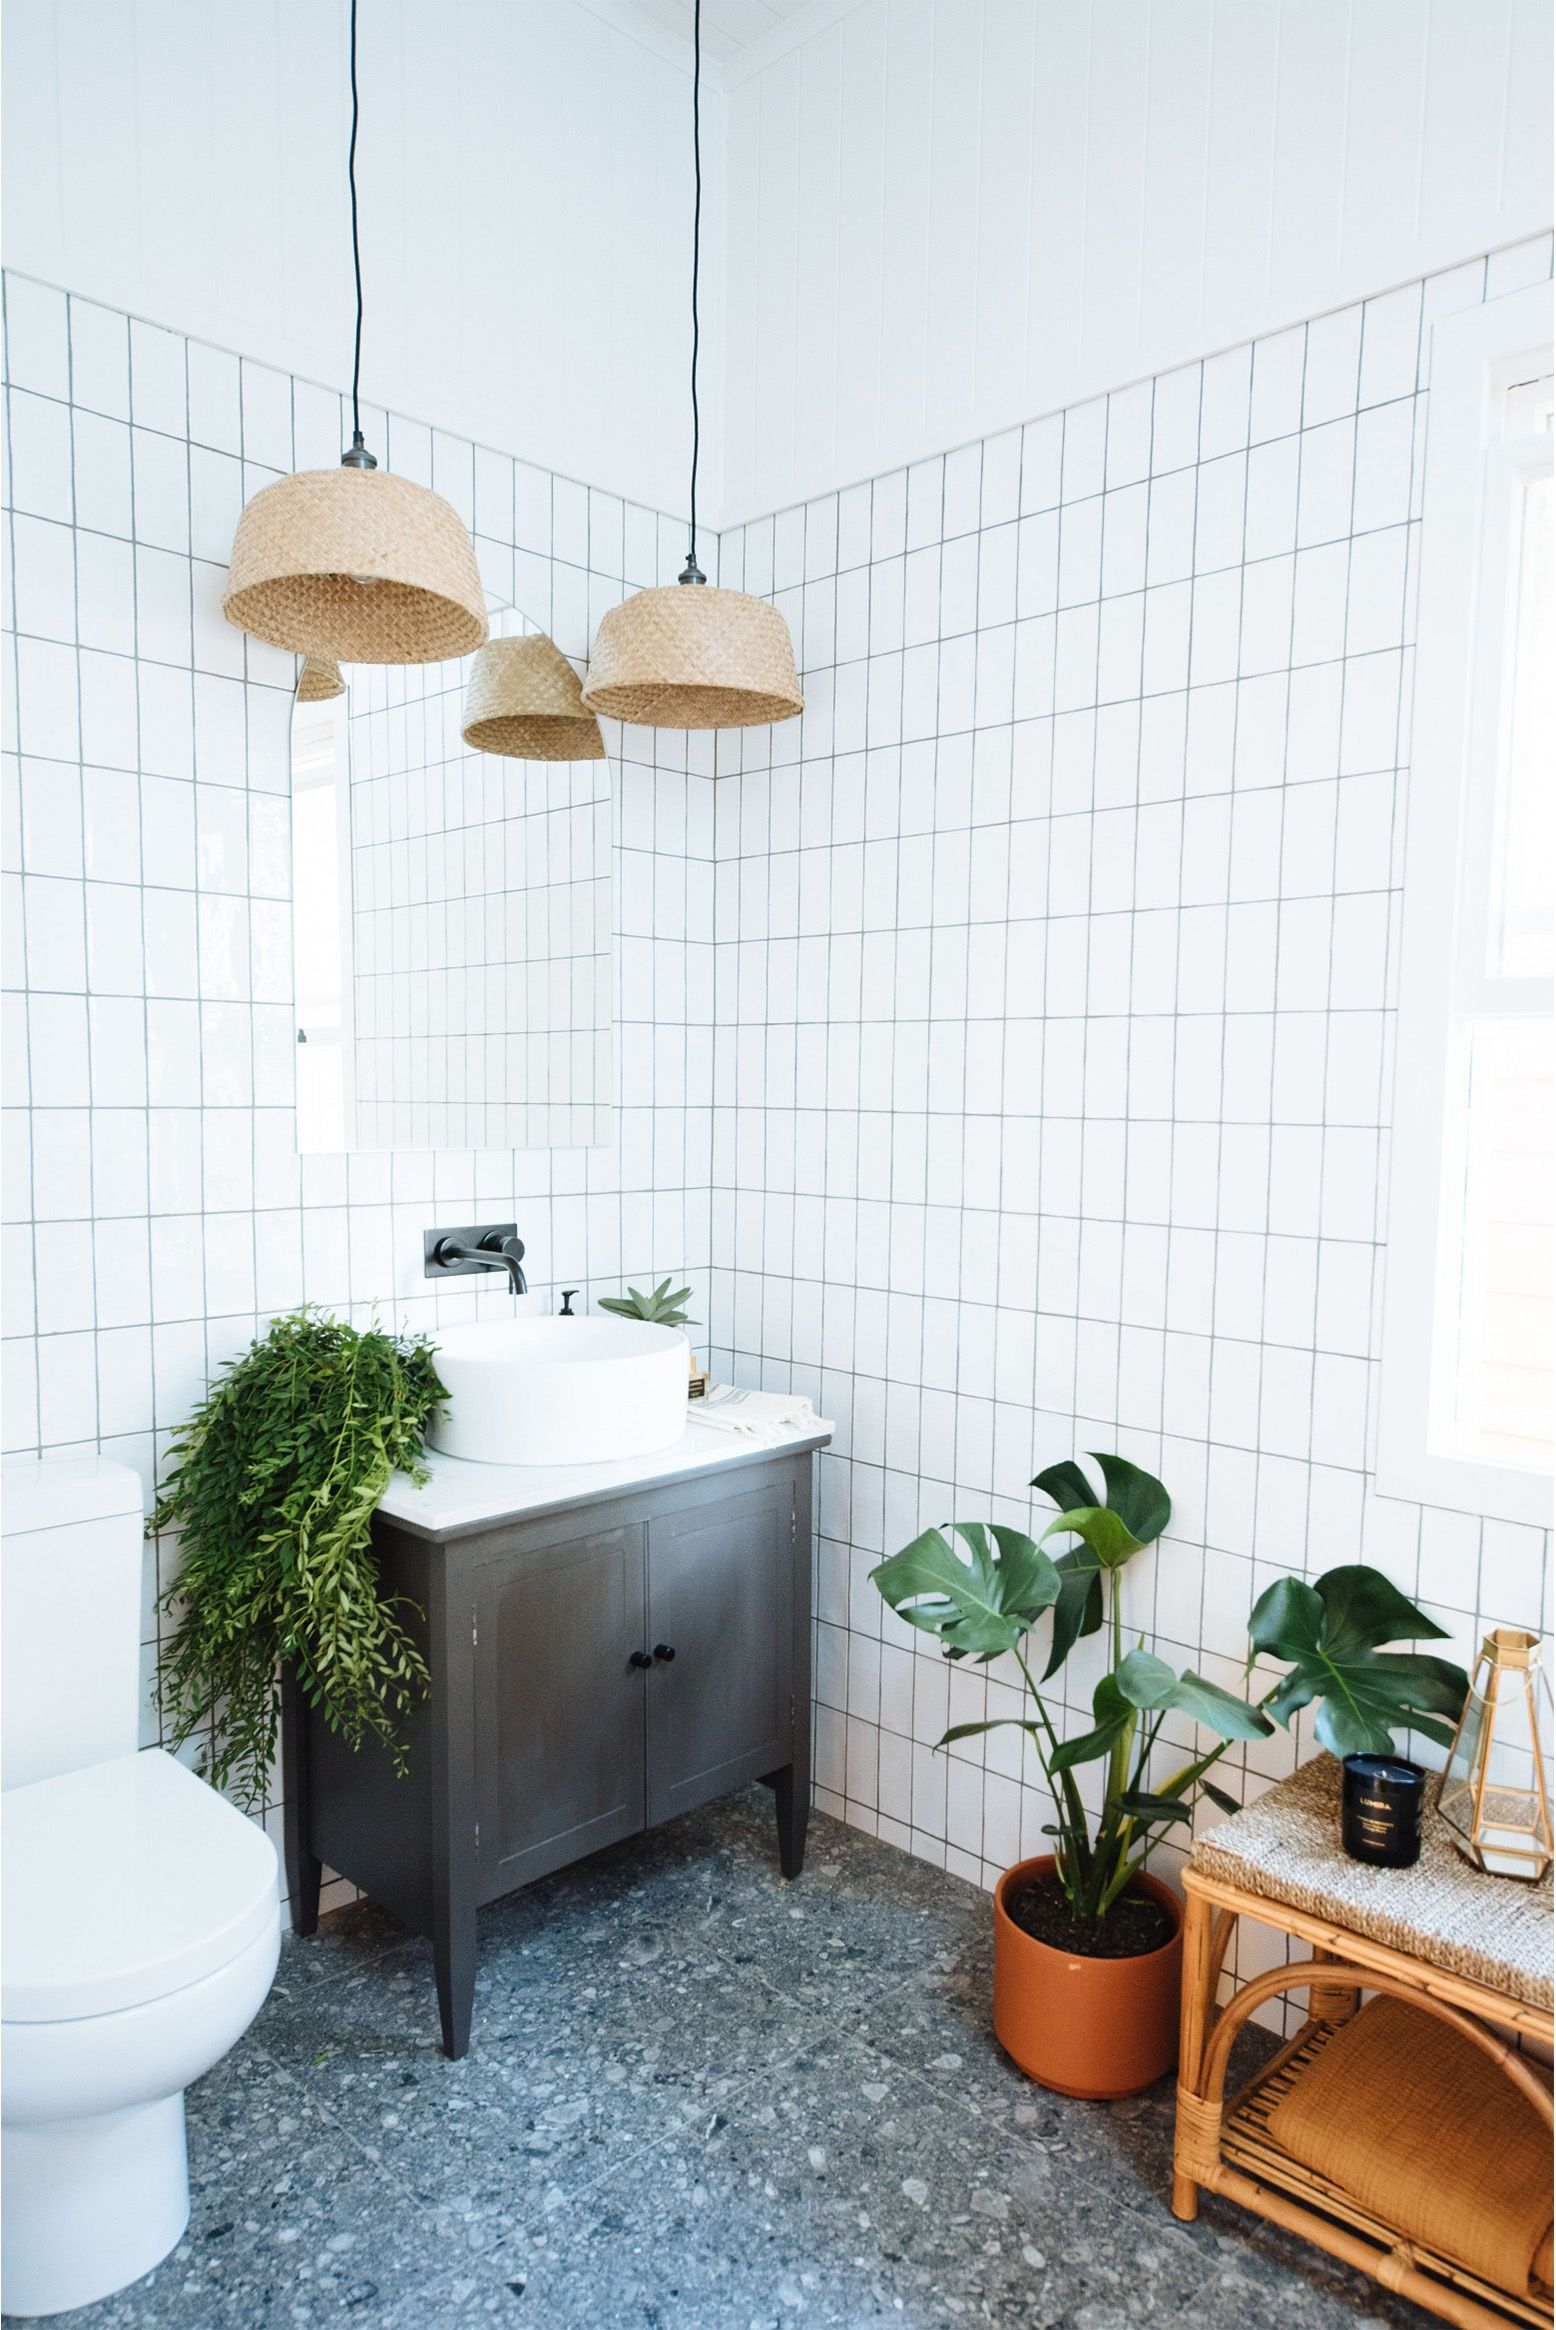 Diy Basket Pendant Lights An Ikea Hack Vintage Bathroom